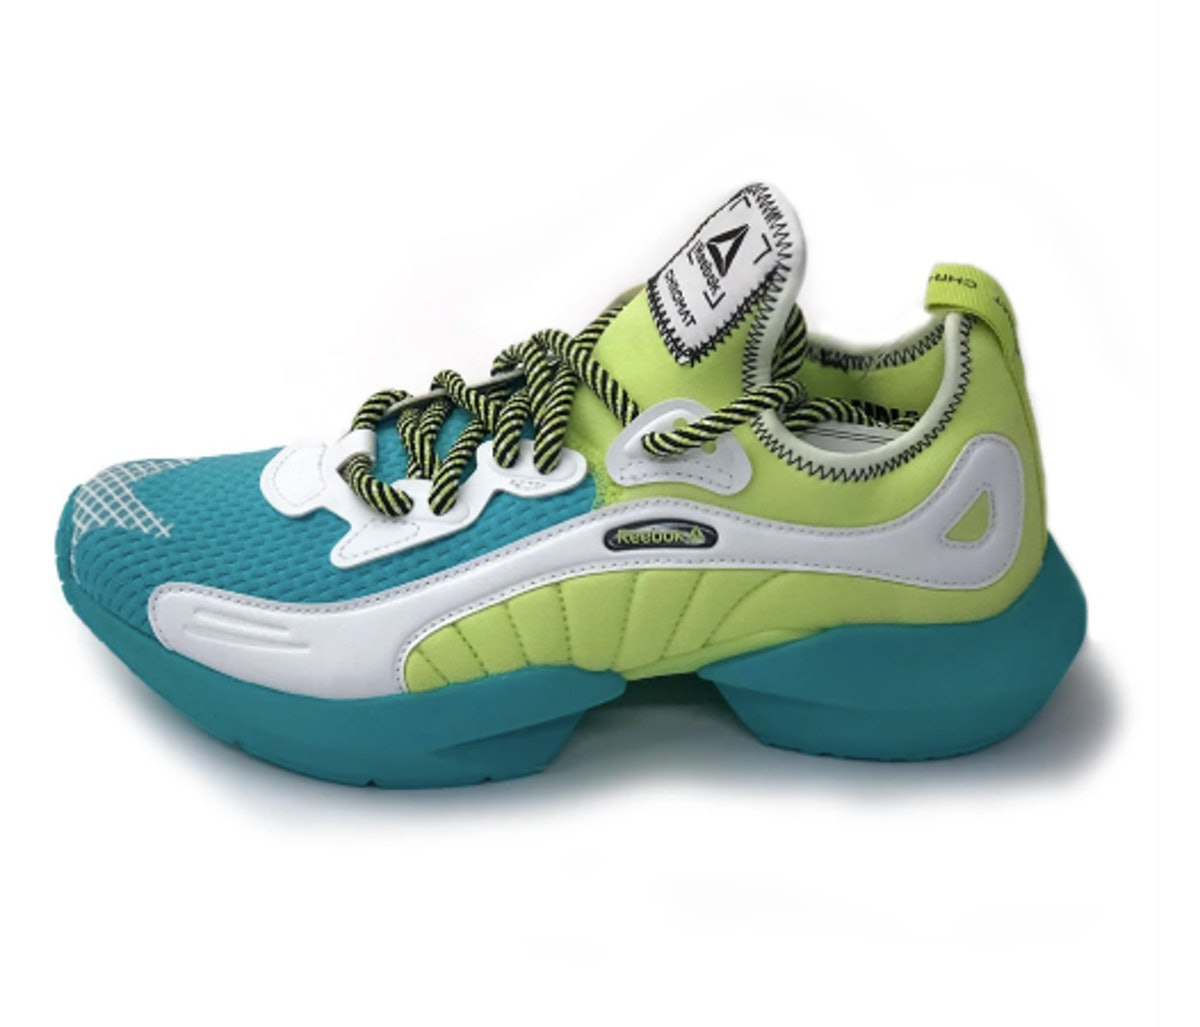 Reebok x Chromat Sole Fury Shoes in Solid Teal/Neon Lime/White